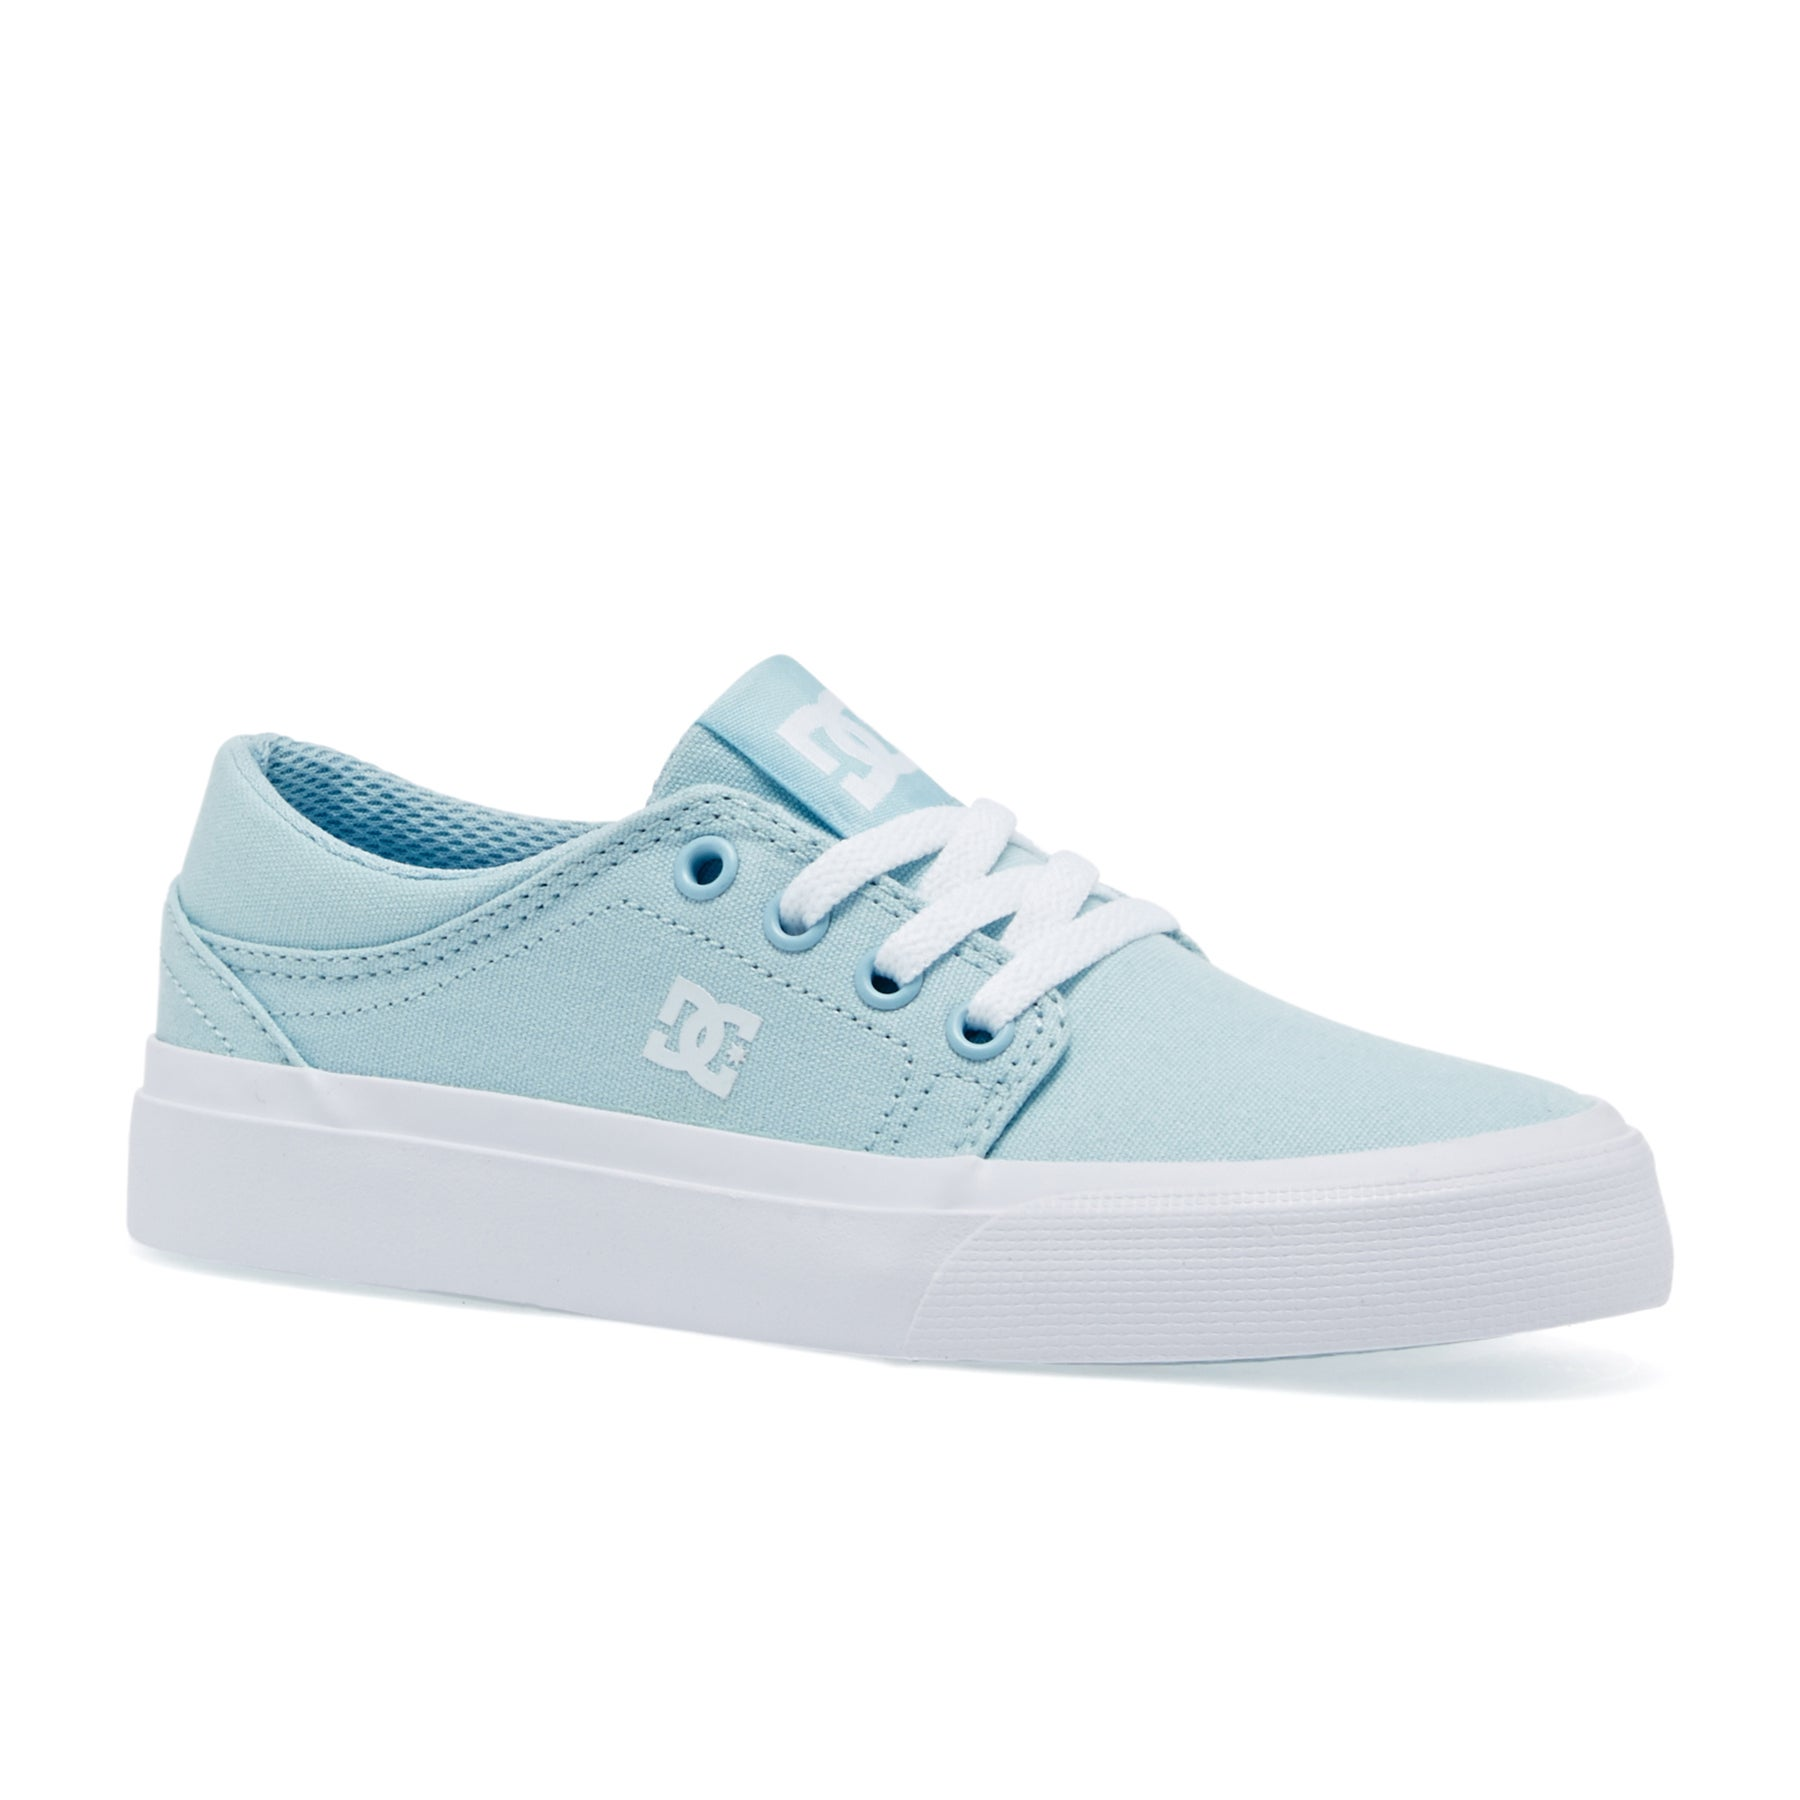 DC Trase TX Girls Shoes - Powder Blue